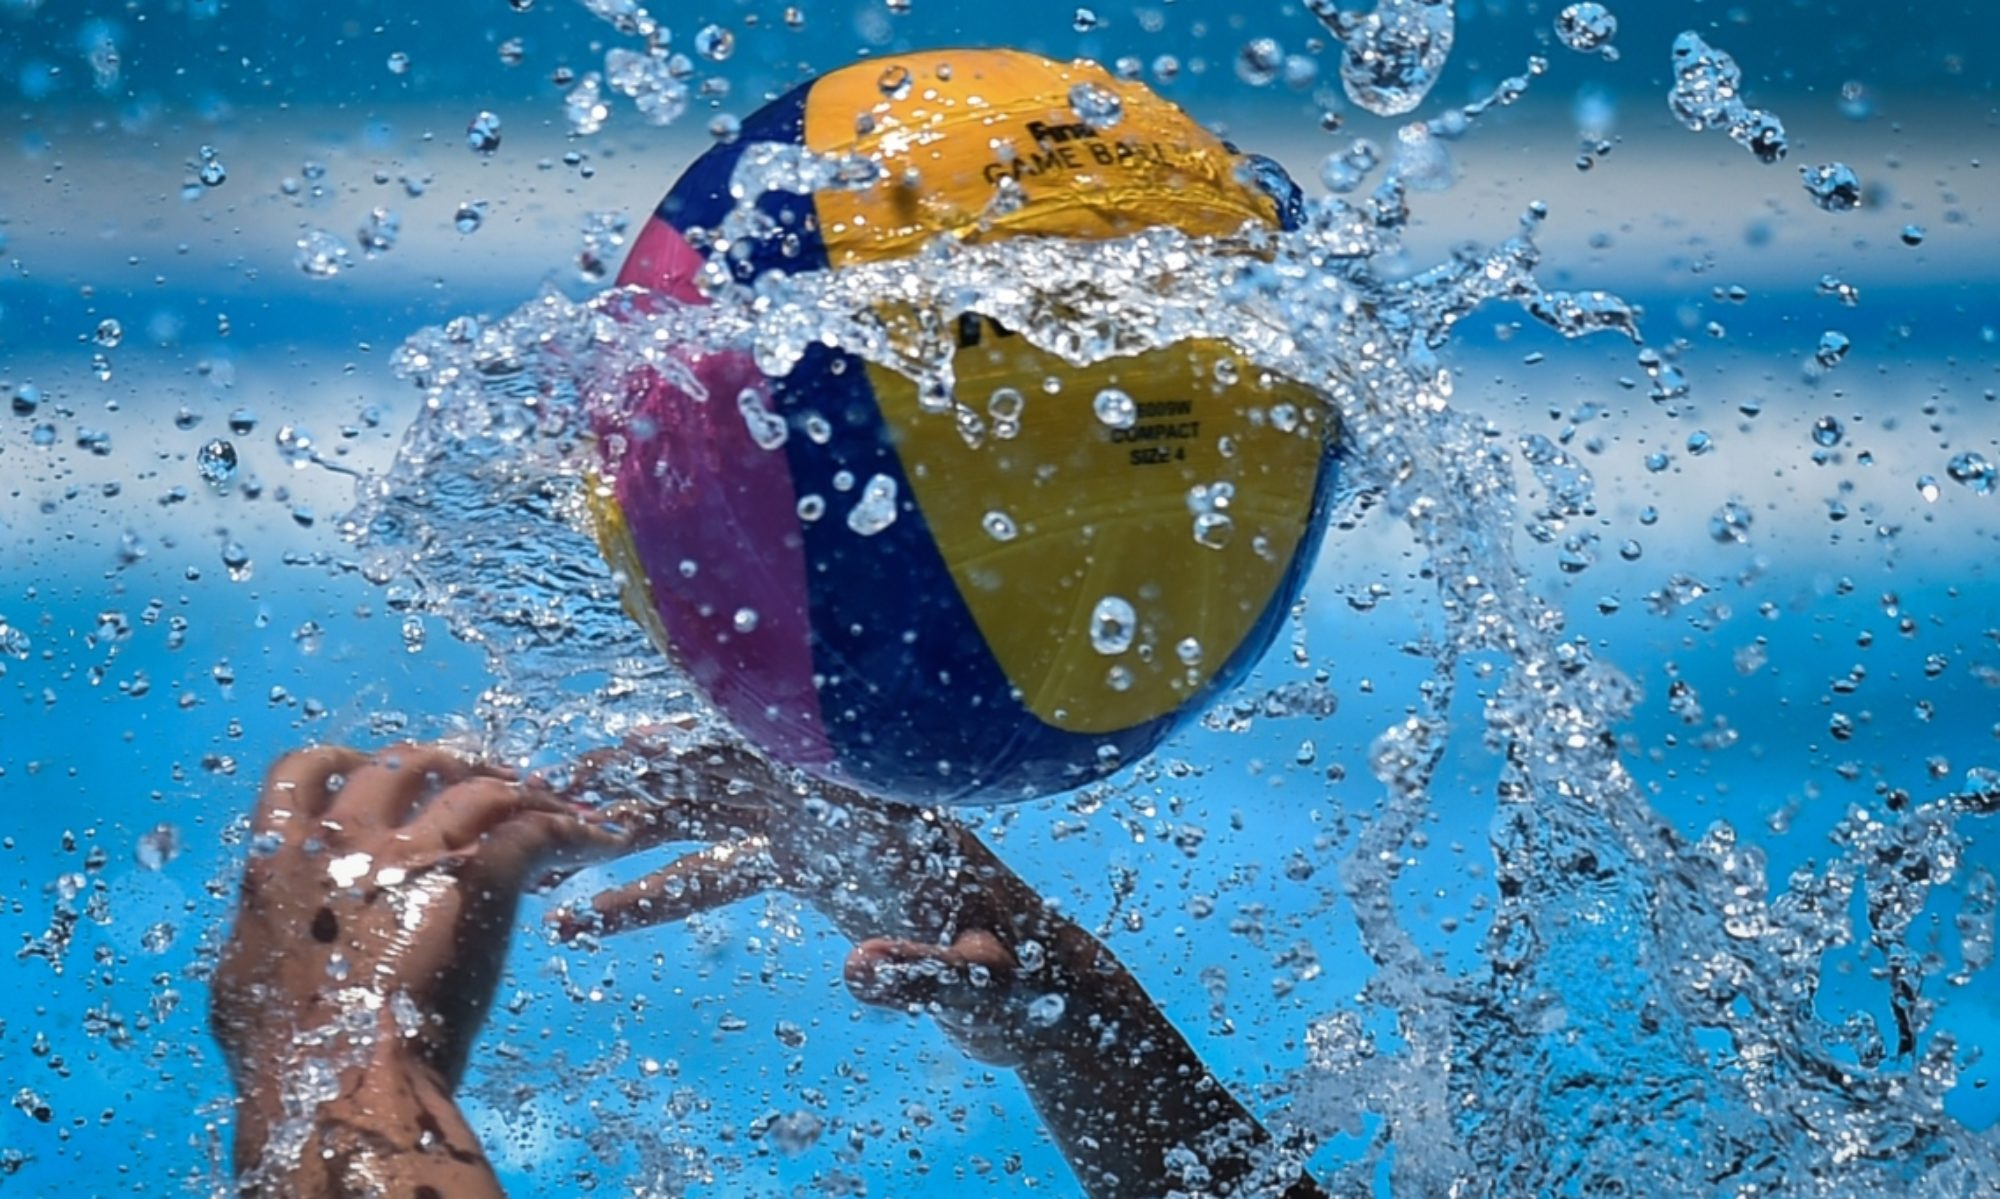 https://www.cclaziowaterpolo.it/wp-content/uploads/2019/01/cropped-54a0004f991cfefb457420c1f5984.jpg